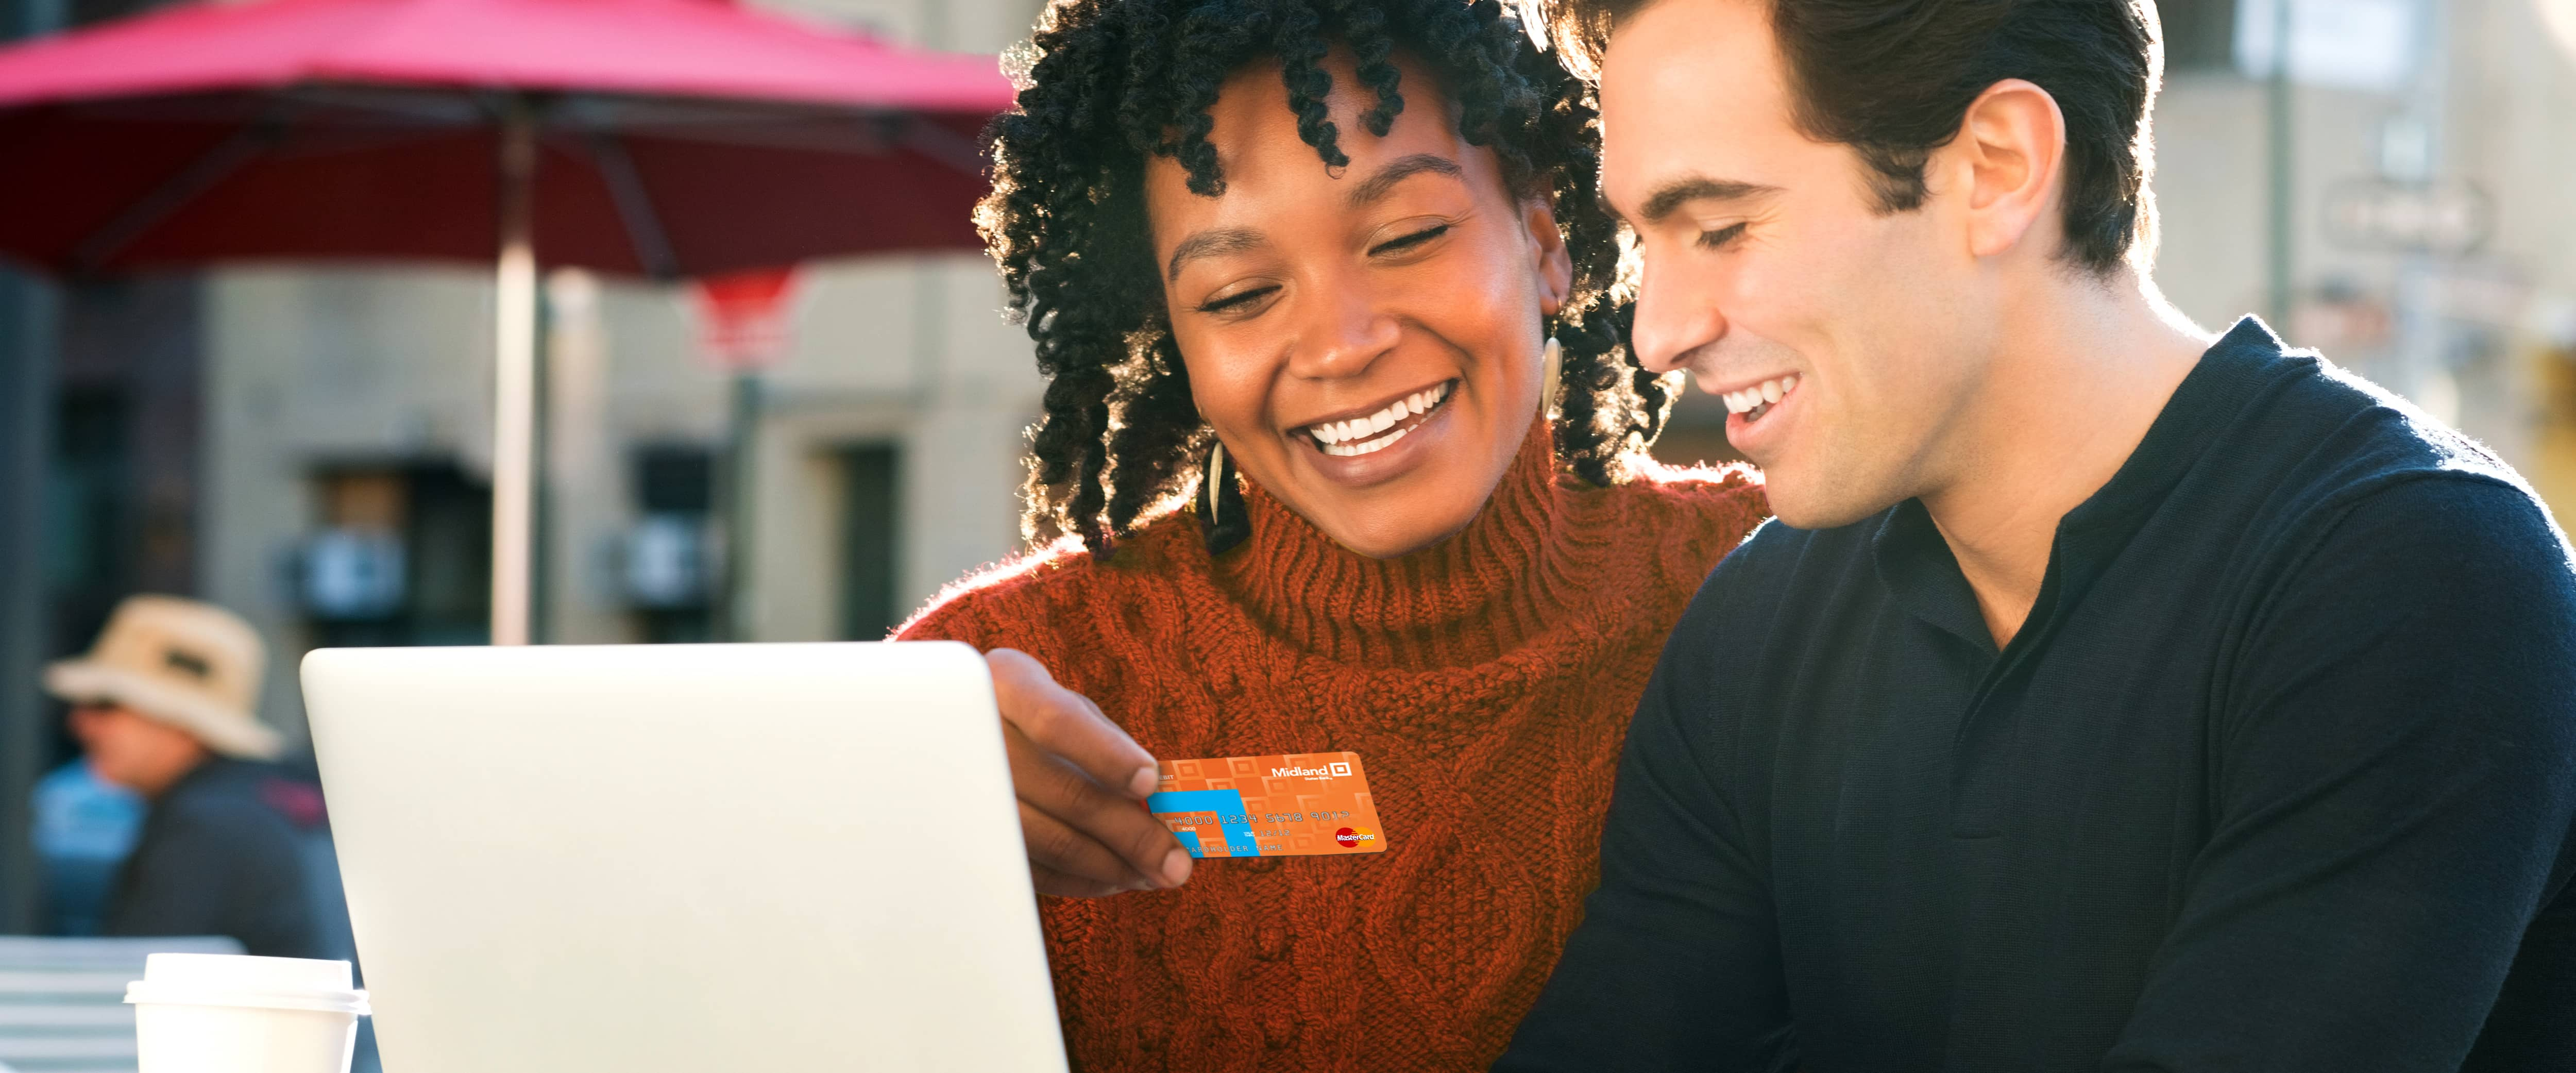 Smiling couple holding a Midland Debit Card while using laptop